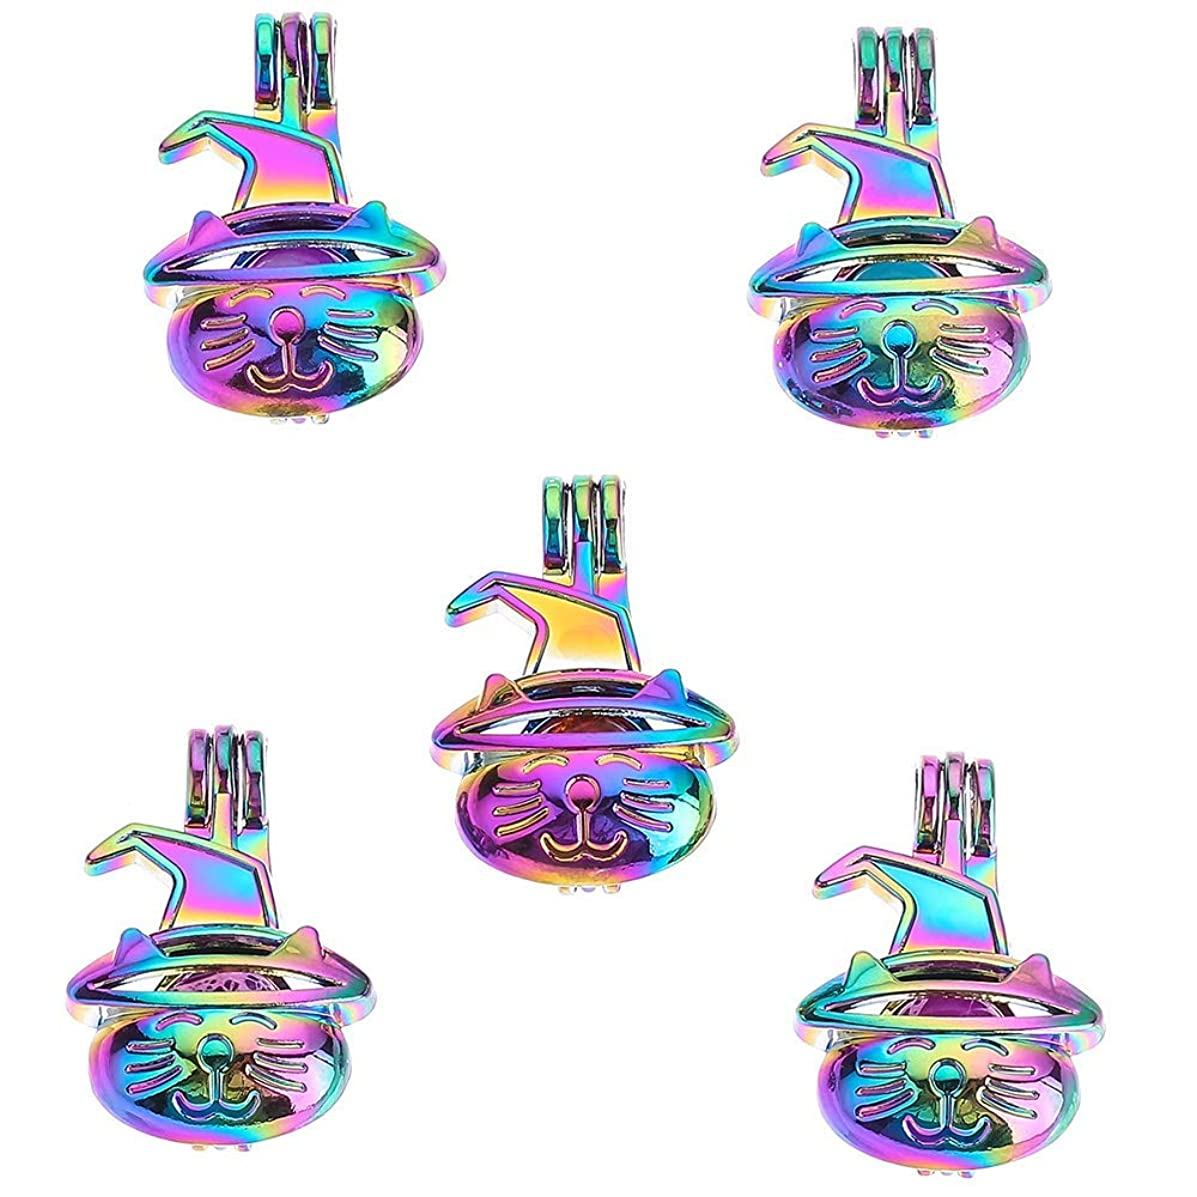 10pcs DIY Pearl Cage Rainbow Color Beads Cage Locket Pendant Jewelry Making Supplies-for Oyster Pearls, Essential Oil Diffuser, Fun Gifts.